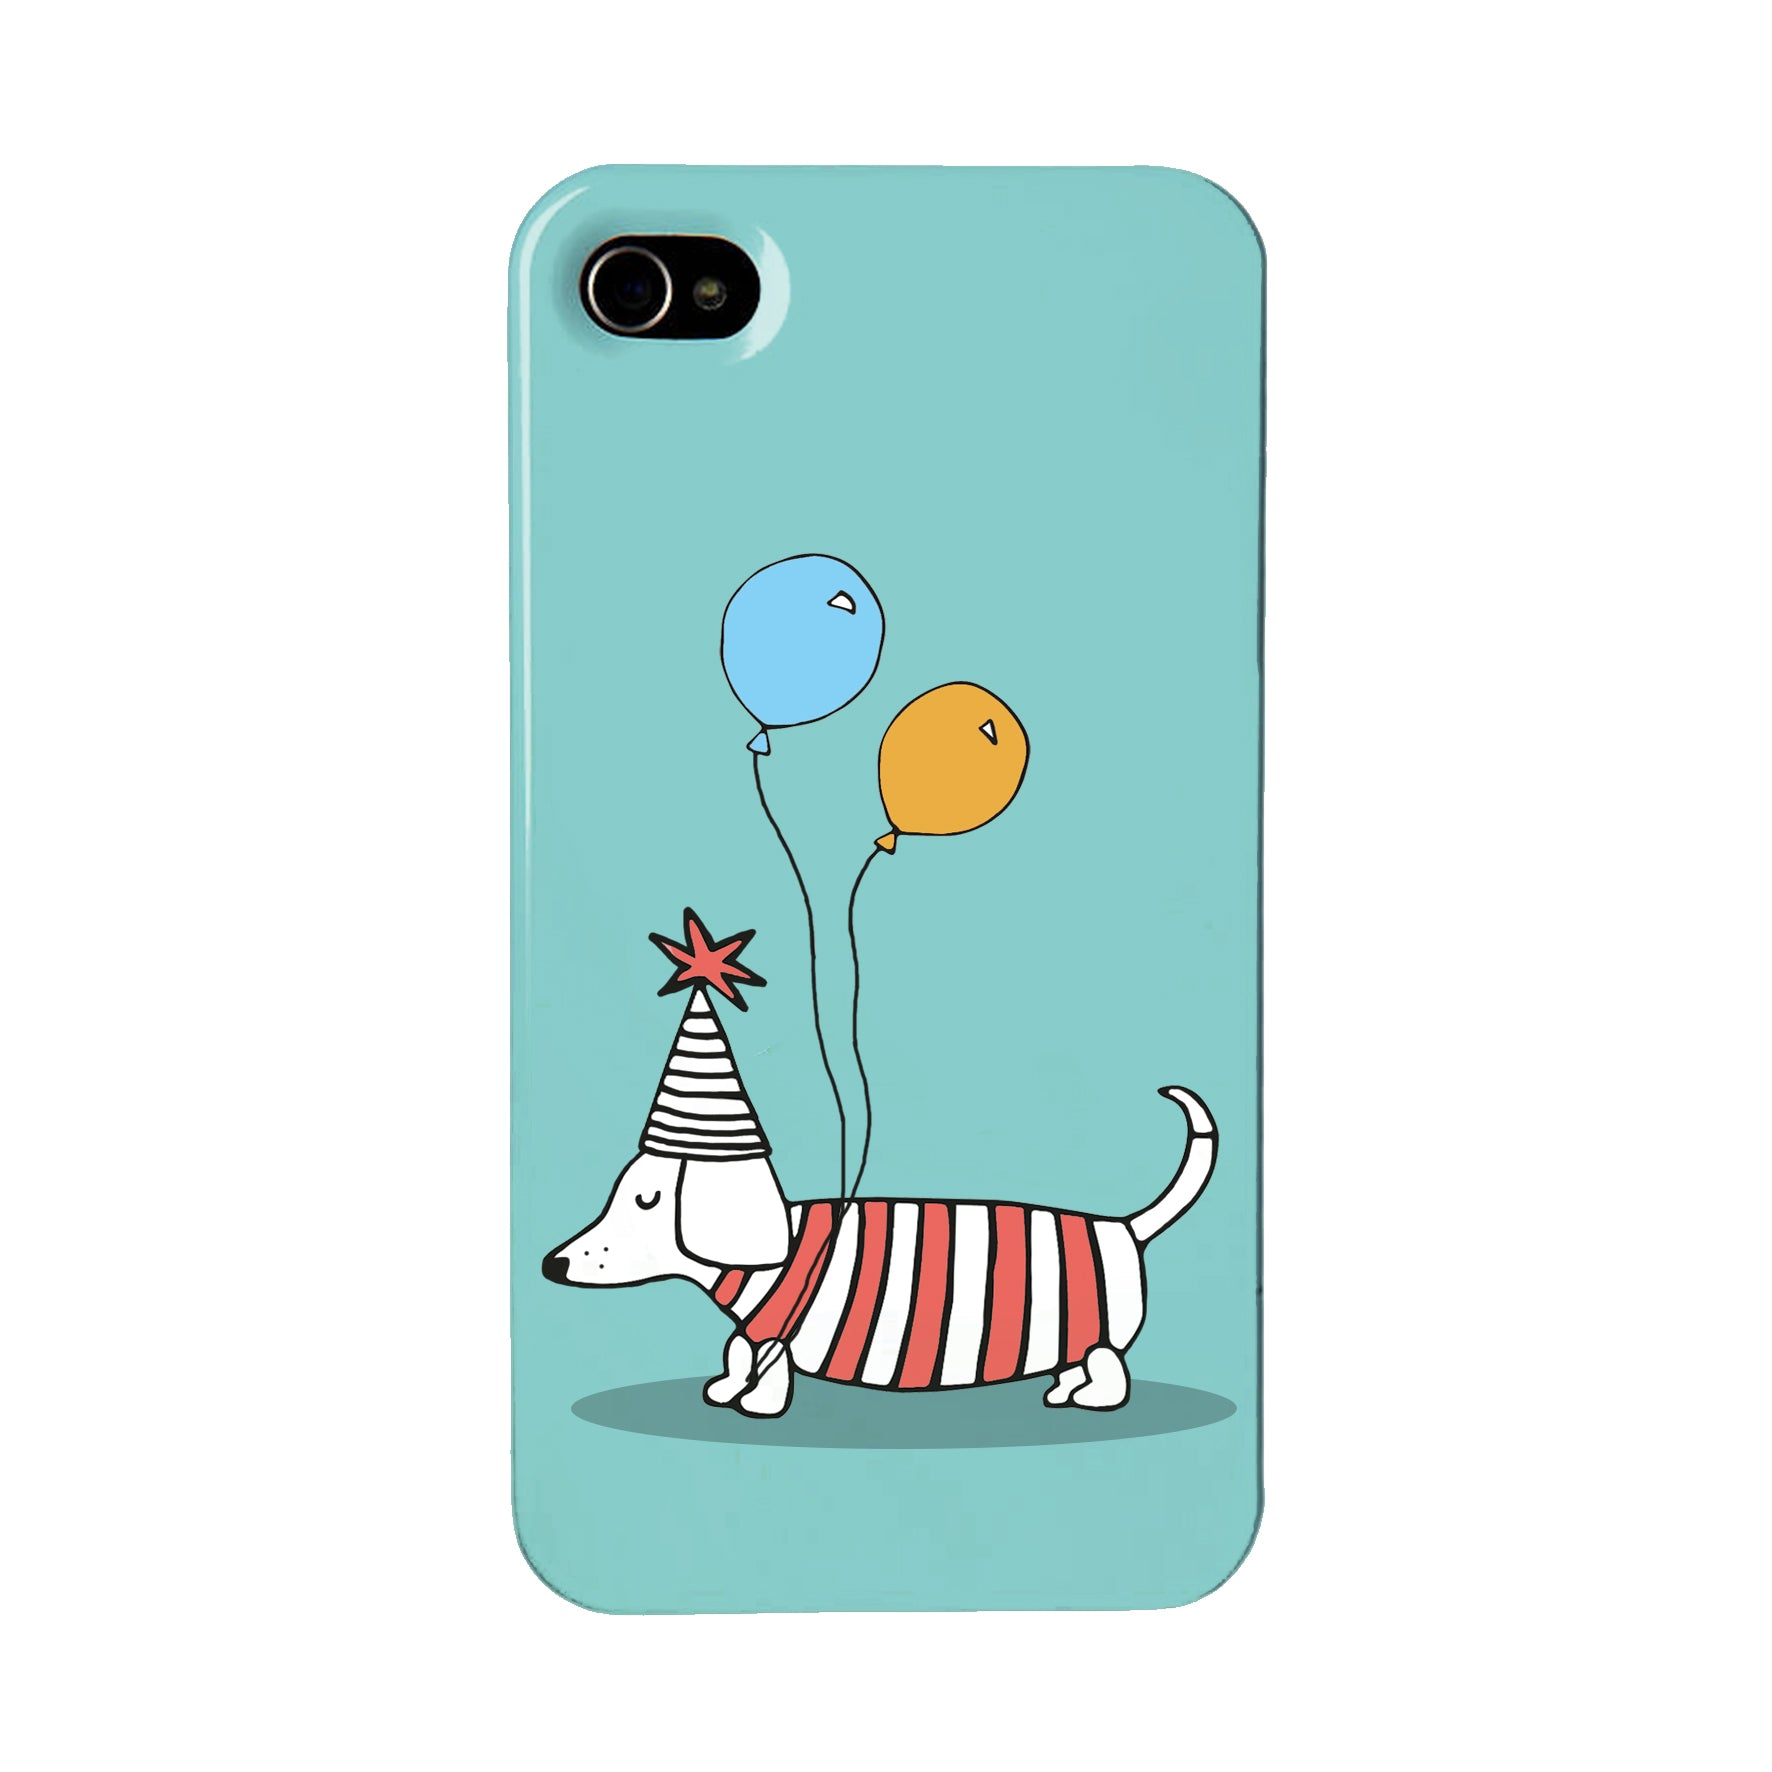 Green phone case with an illustration of a dachshund